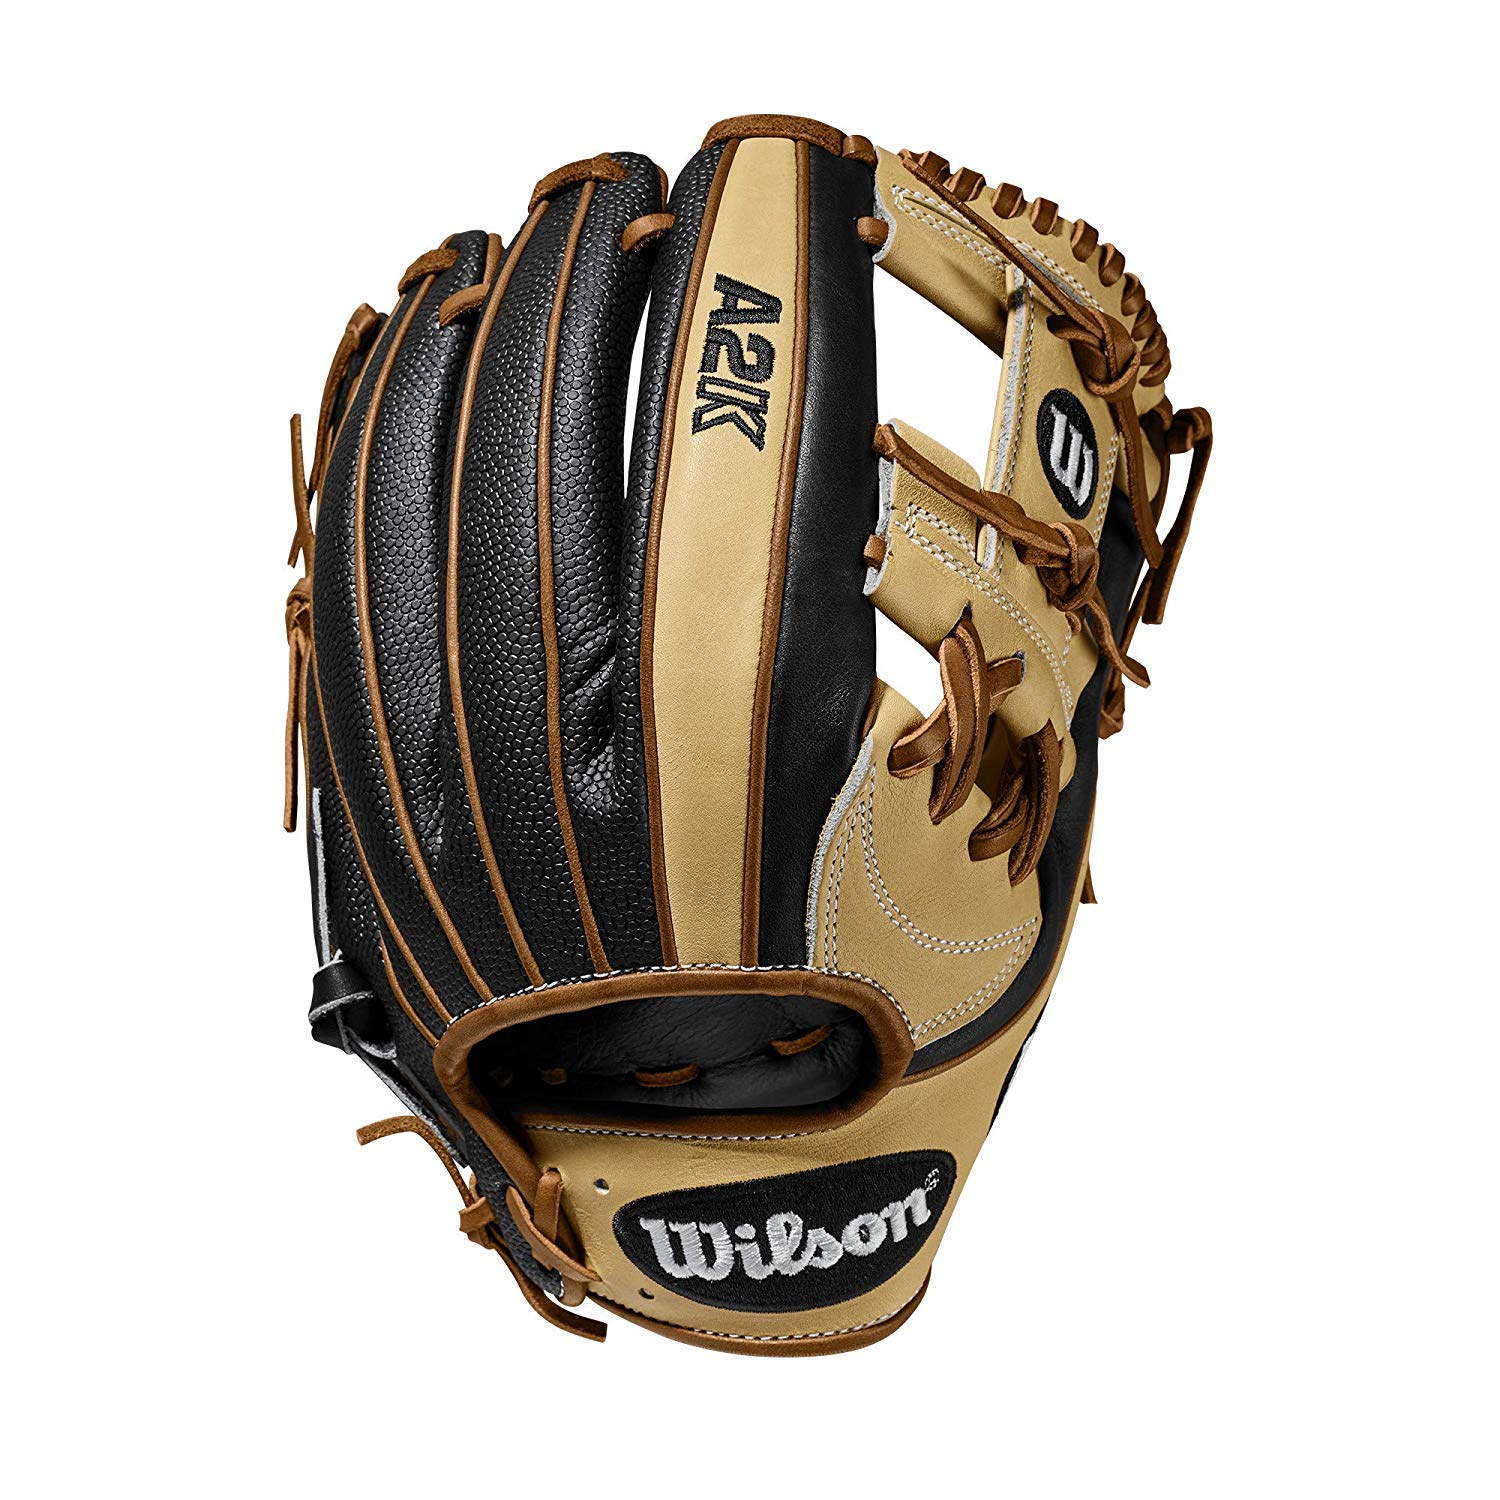 wilson-a2k-baseball-glove-1787-superskin-11-75-right-hand-throw WTA2KRB201787SS-RightHandThrow Wilson 887768815226 Unparalleled Craftsmanship Every single A2K ball glove receives three times more